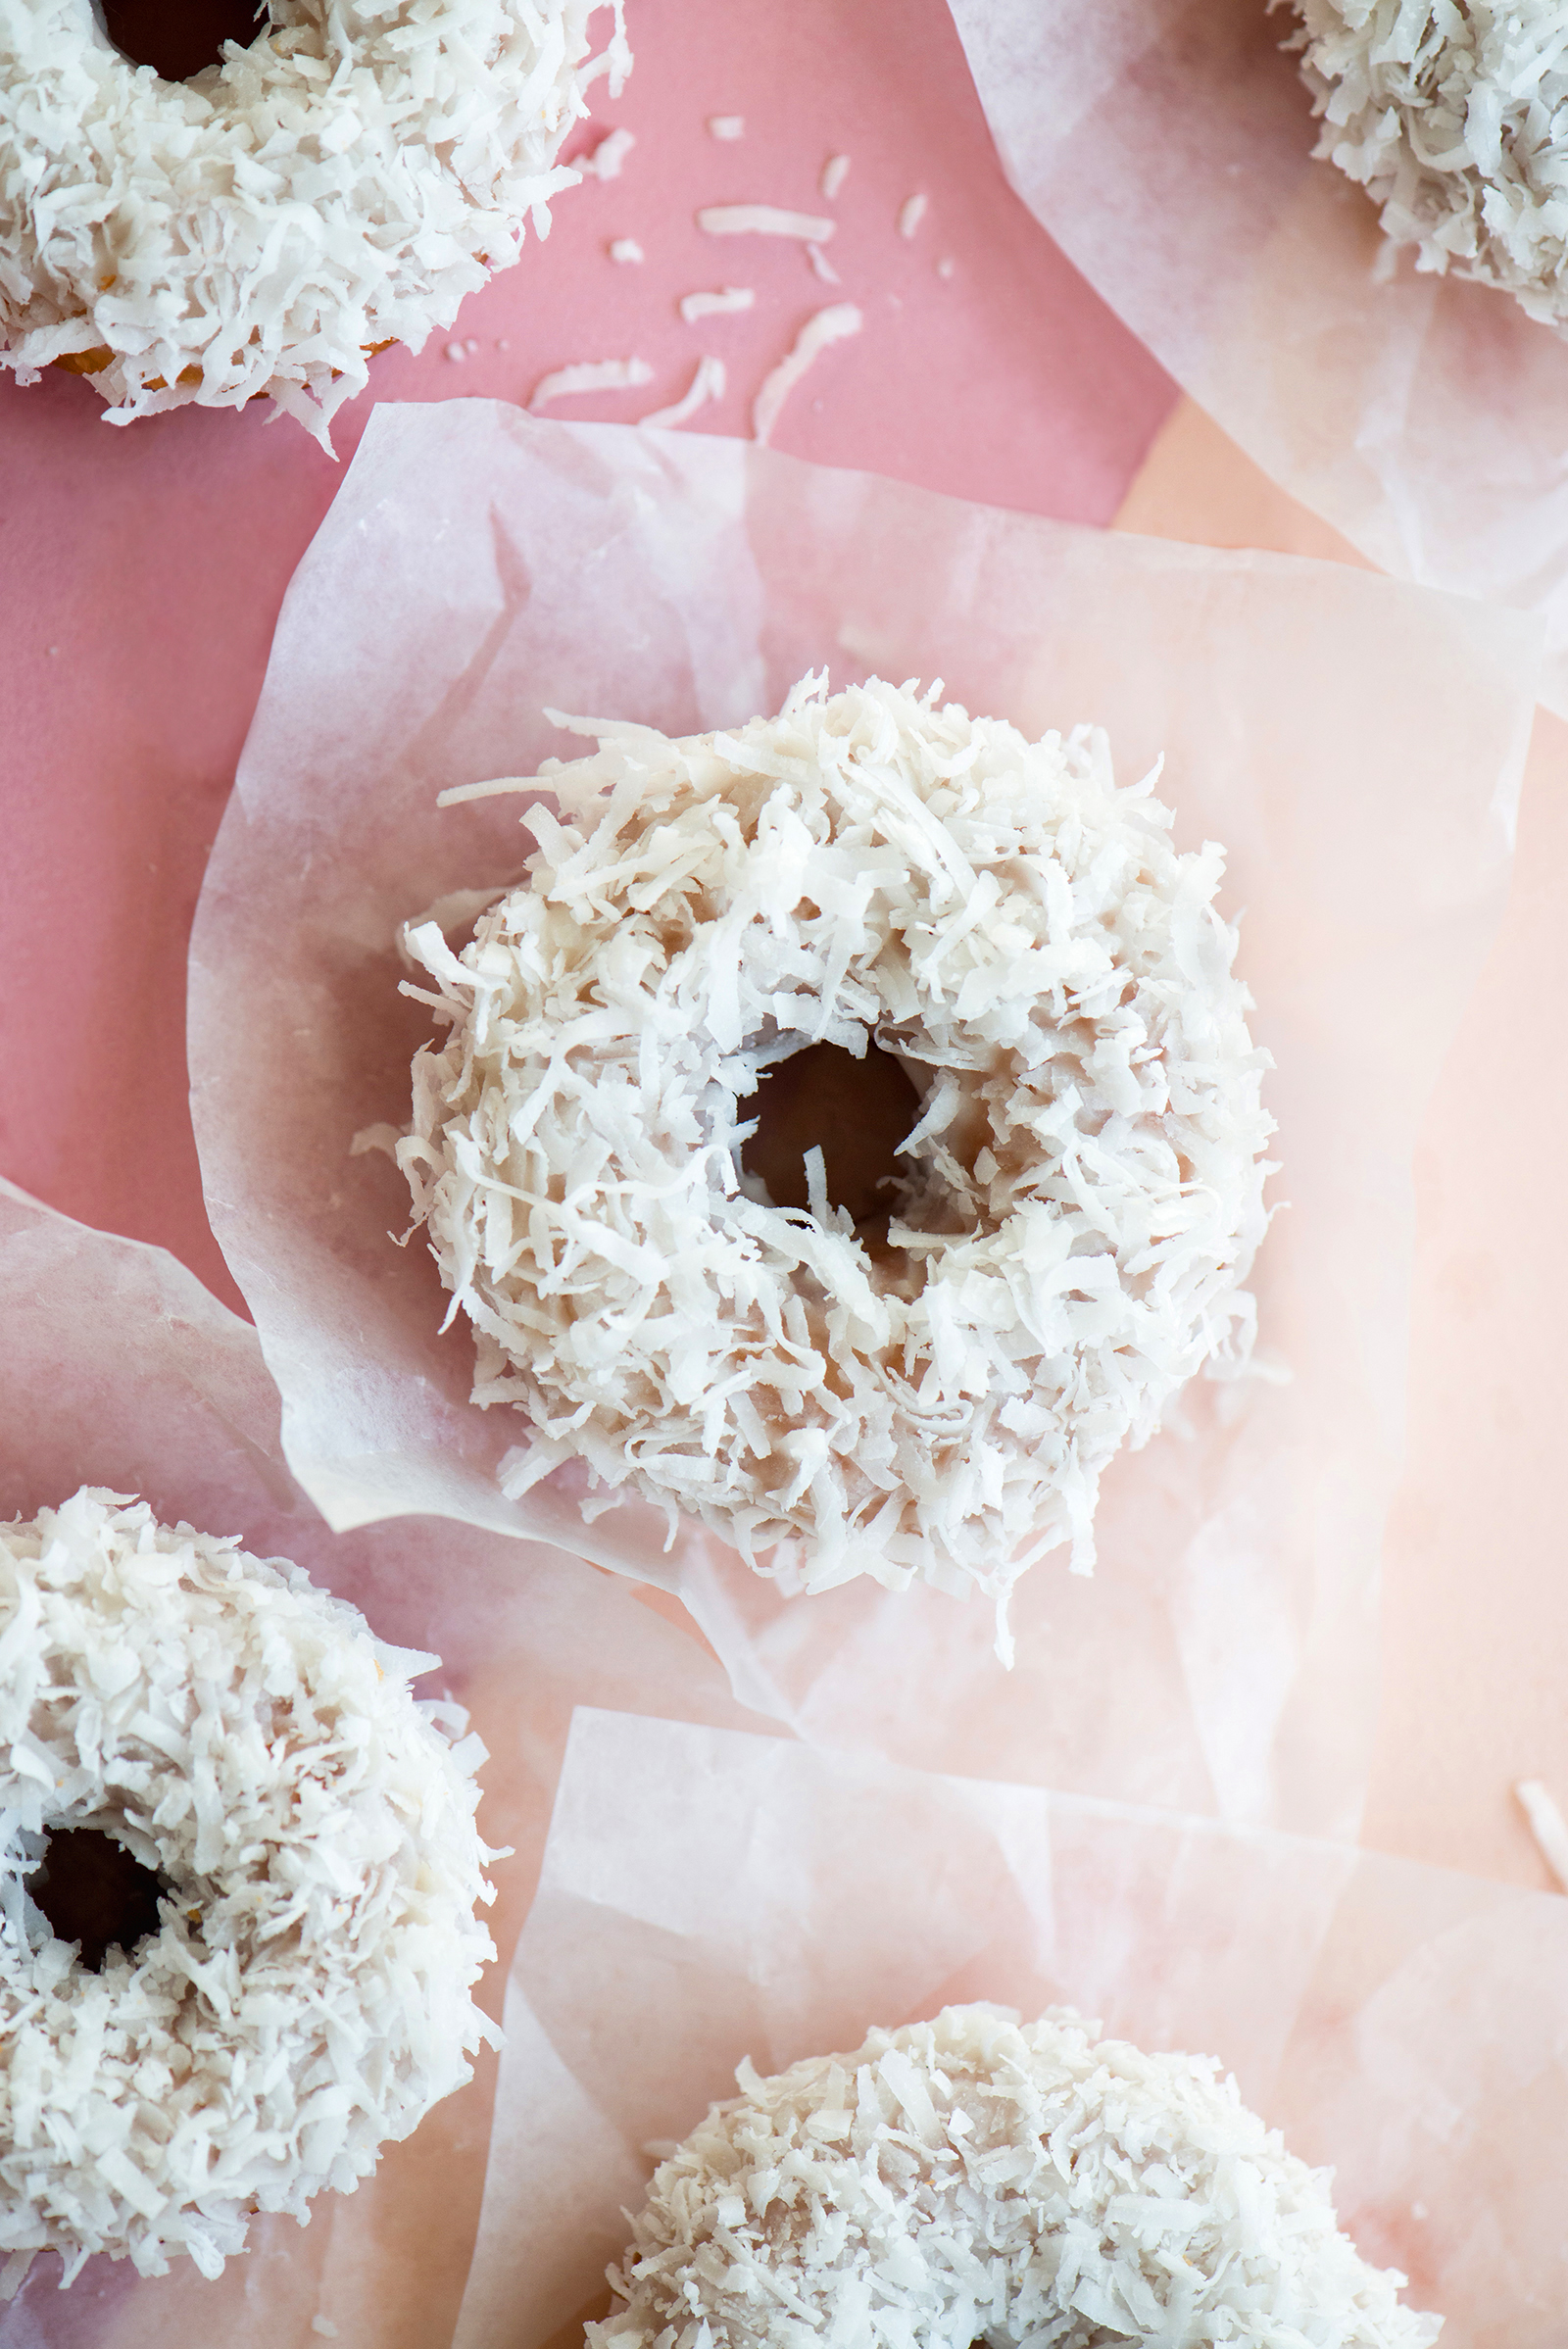 Coconut Doughnuts | Now, Forager | Teresa Floyd